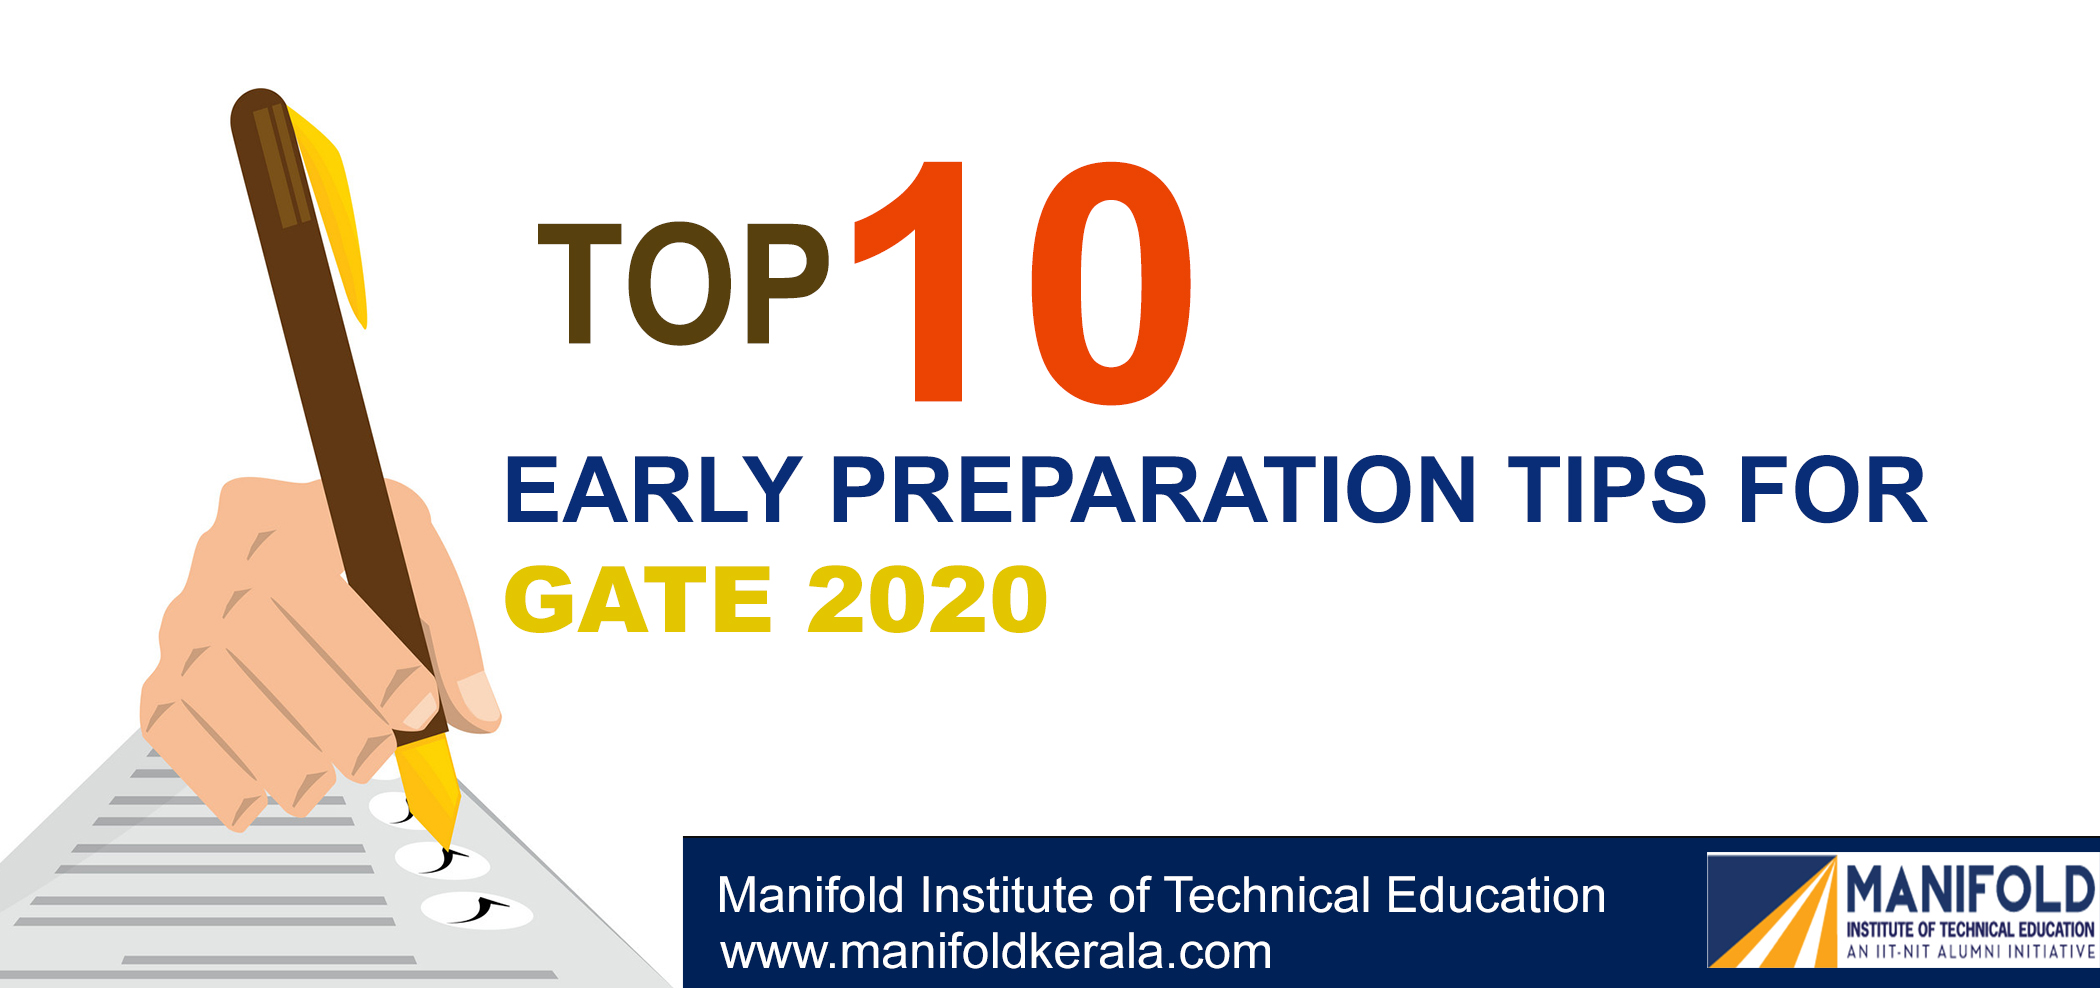 Top 10 Early Preparation tips For GATE 2020 - MITE